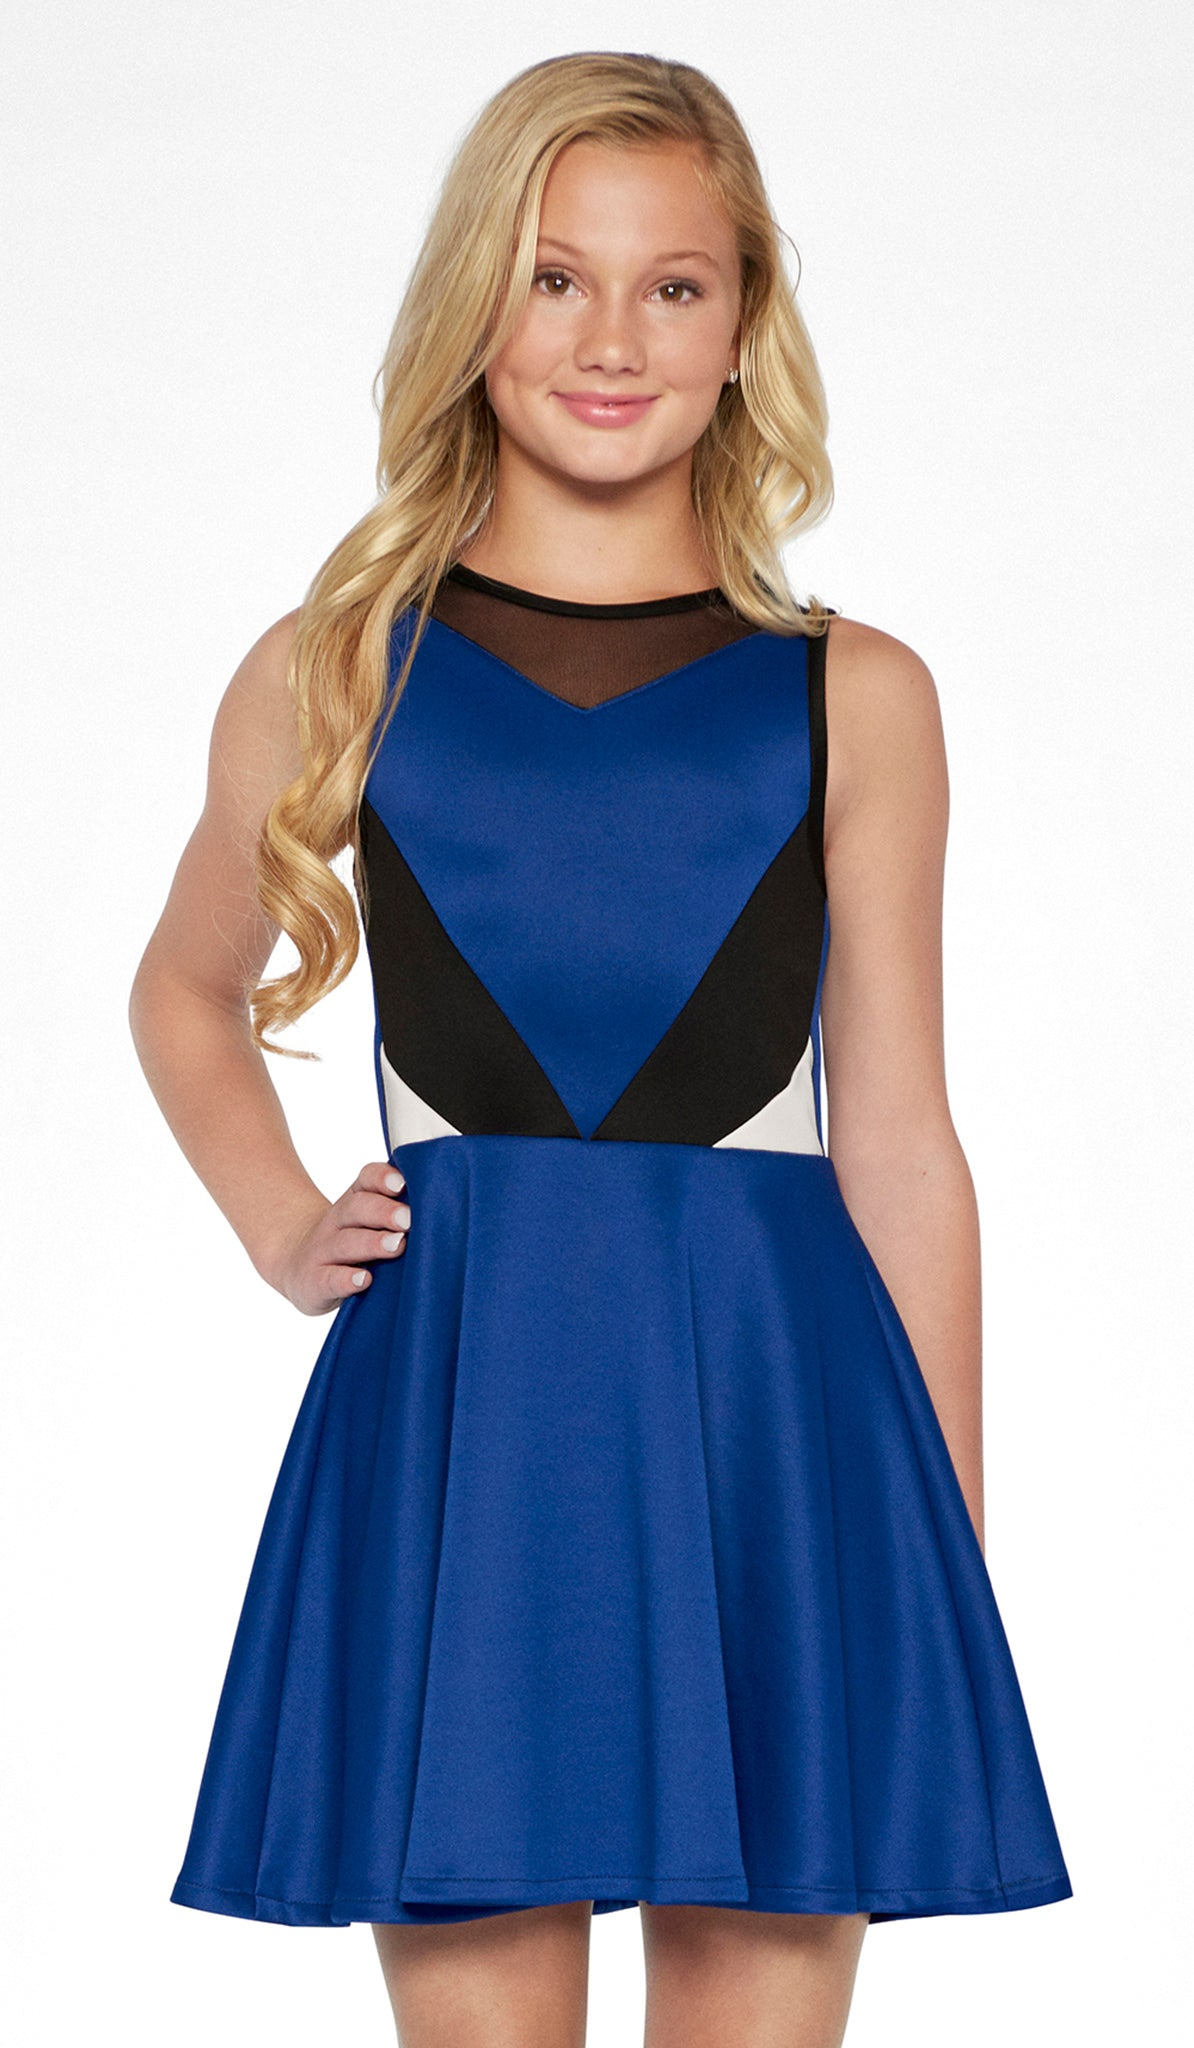 THE BREE DRESS - Sallymiller.com - [variant title] - | Event & Party Dresses for Tween Girls & Juniors | Weddings Dresses, Bat Mitzvah Dresses, Sweet Sixteen Dresses, Graduation Dresses, Birthday Party Dresses, Bar Mitzvah Dresses, Cotillion Dresses